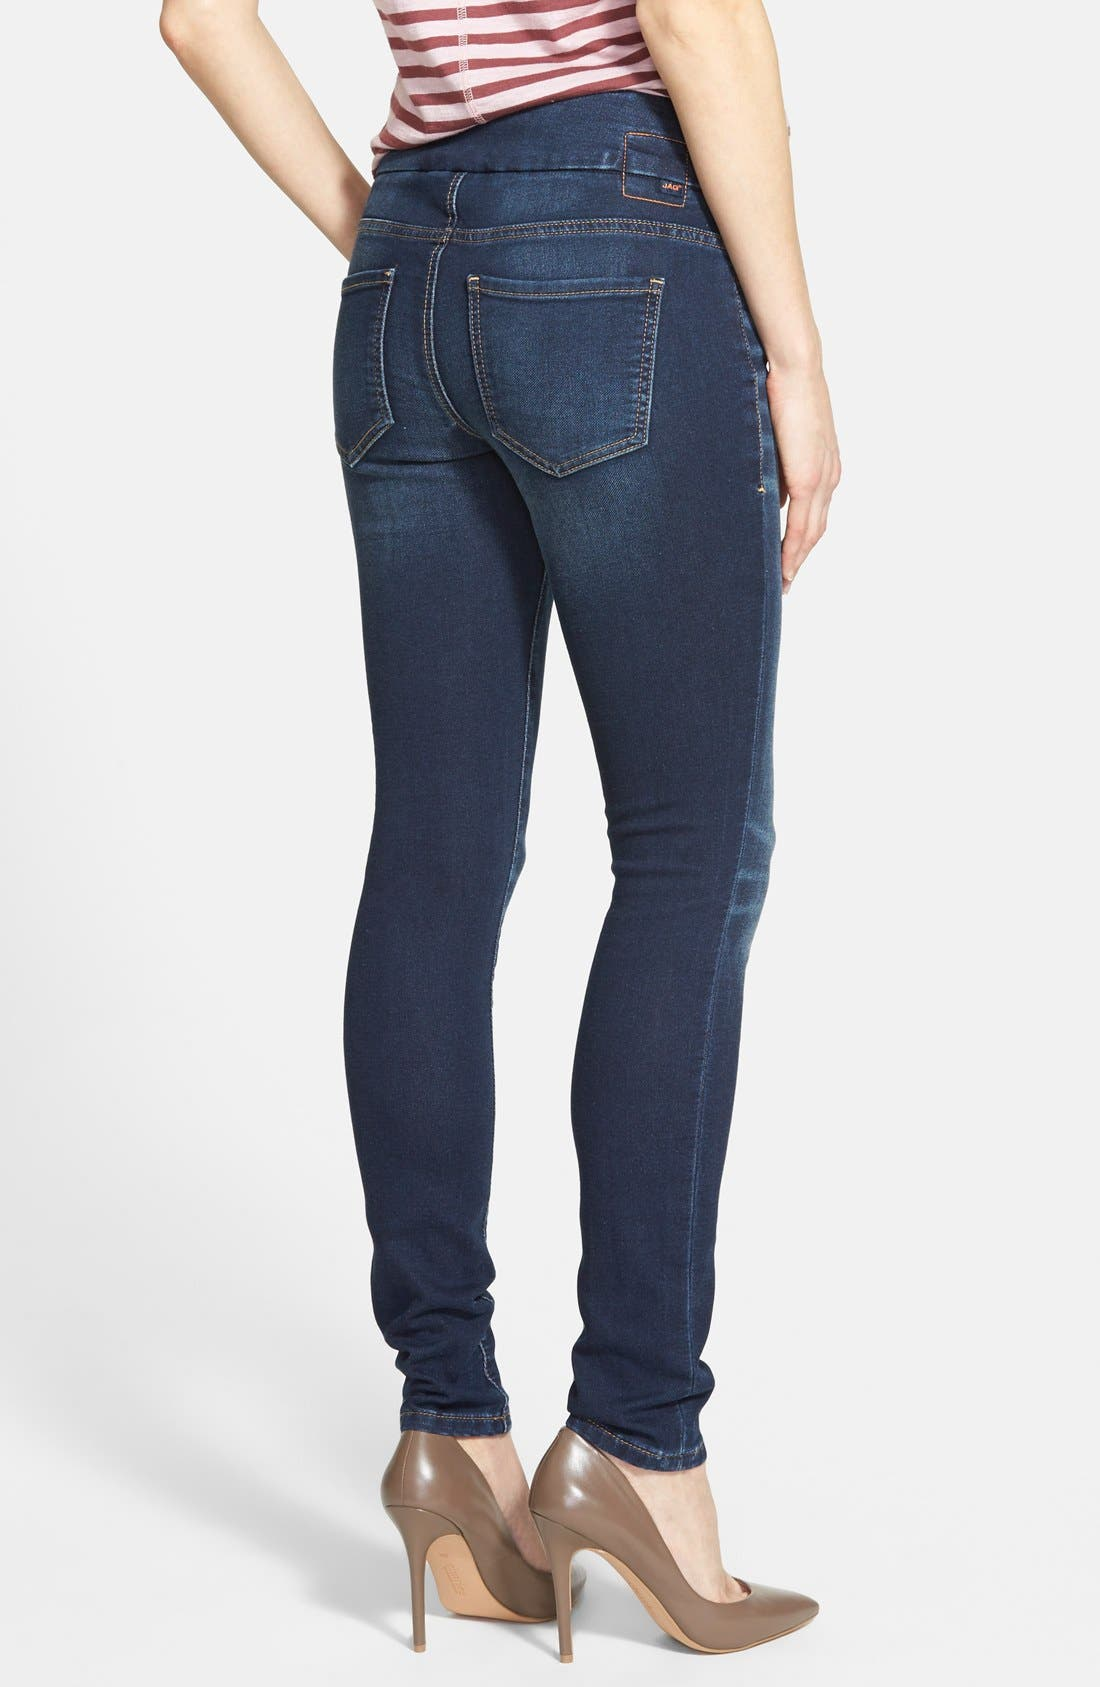 'Nora' Pull-On Stretch Knit Skinny Jeans,                             Alternate thumbnail 2, color,                             401